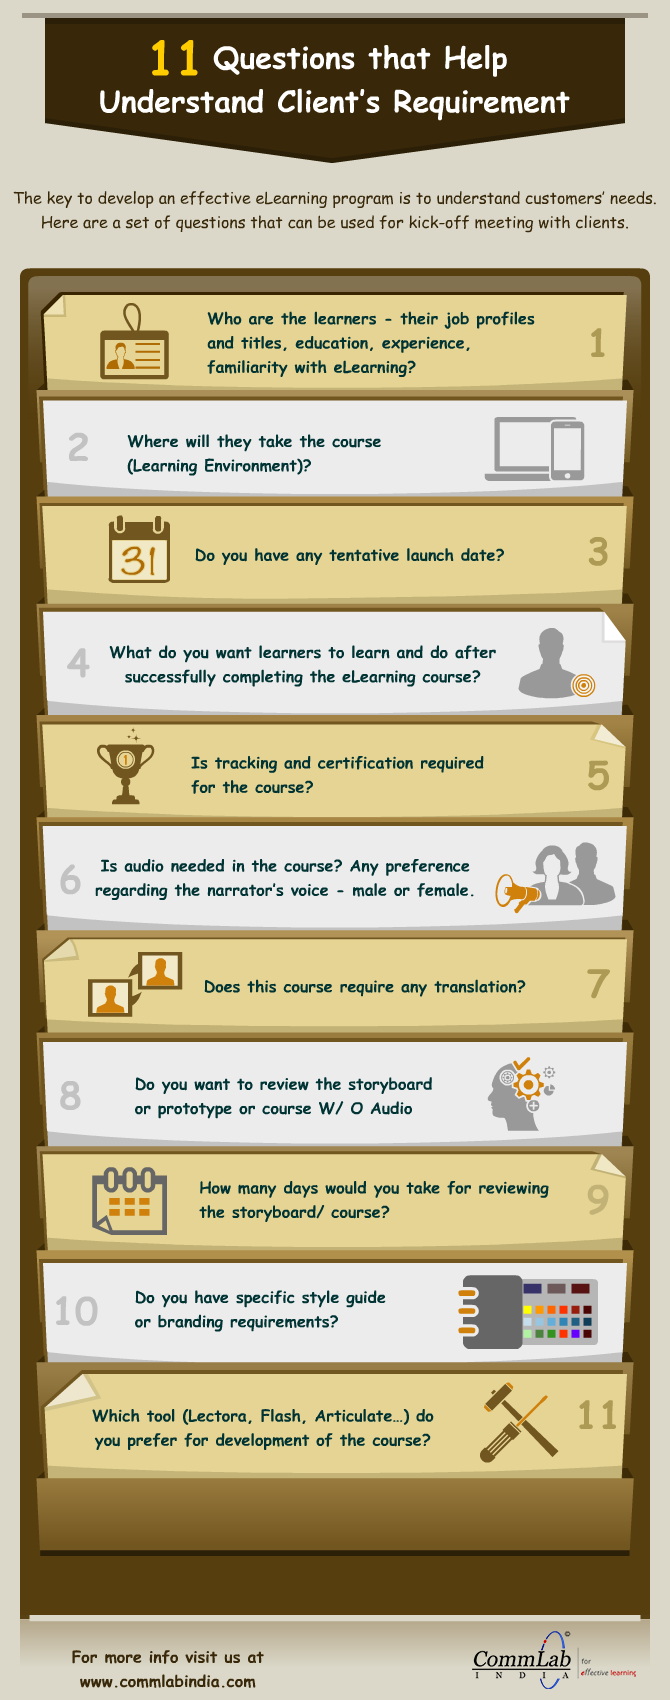 11 Questions that Help Understand Client's Requirement [Infographic]